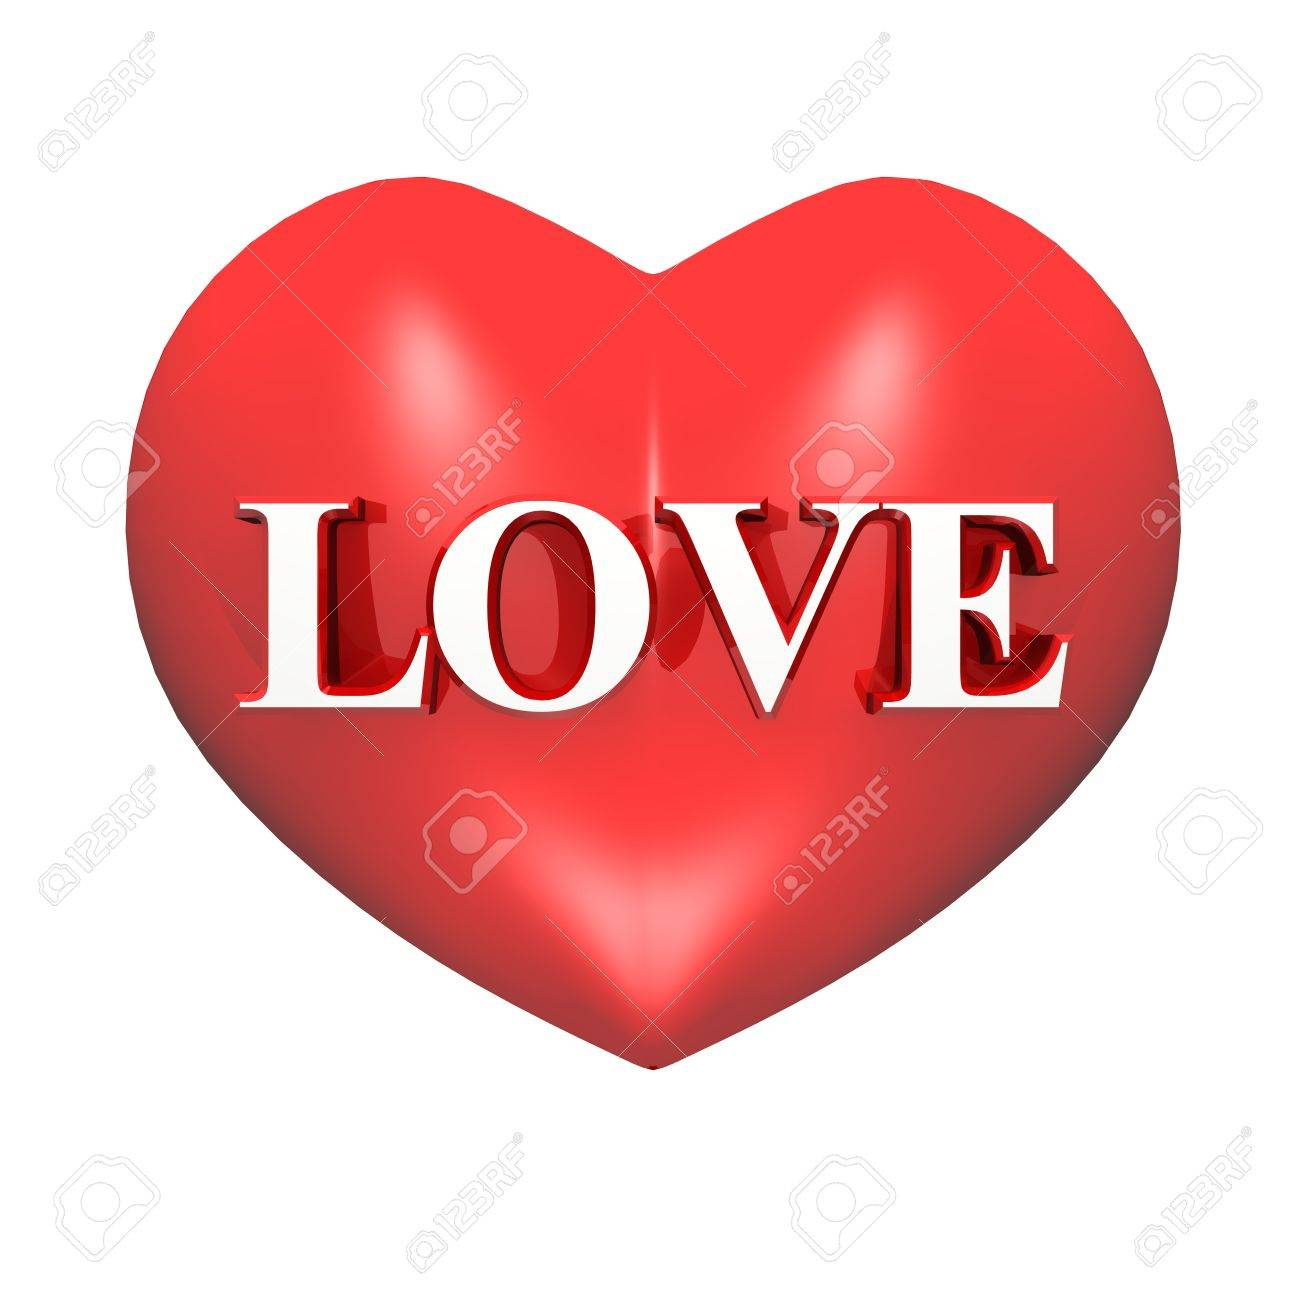 3D red heart - LOVE Stock Photo - 13821065